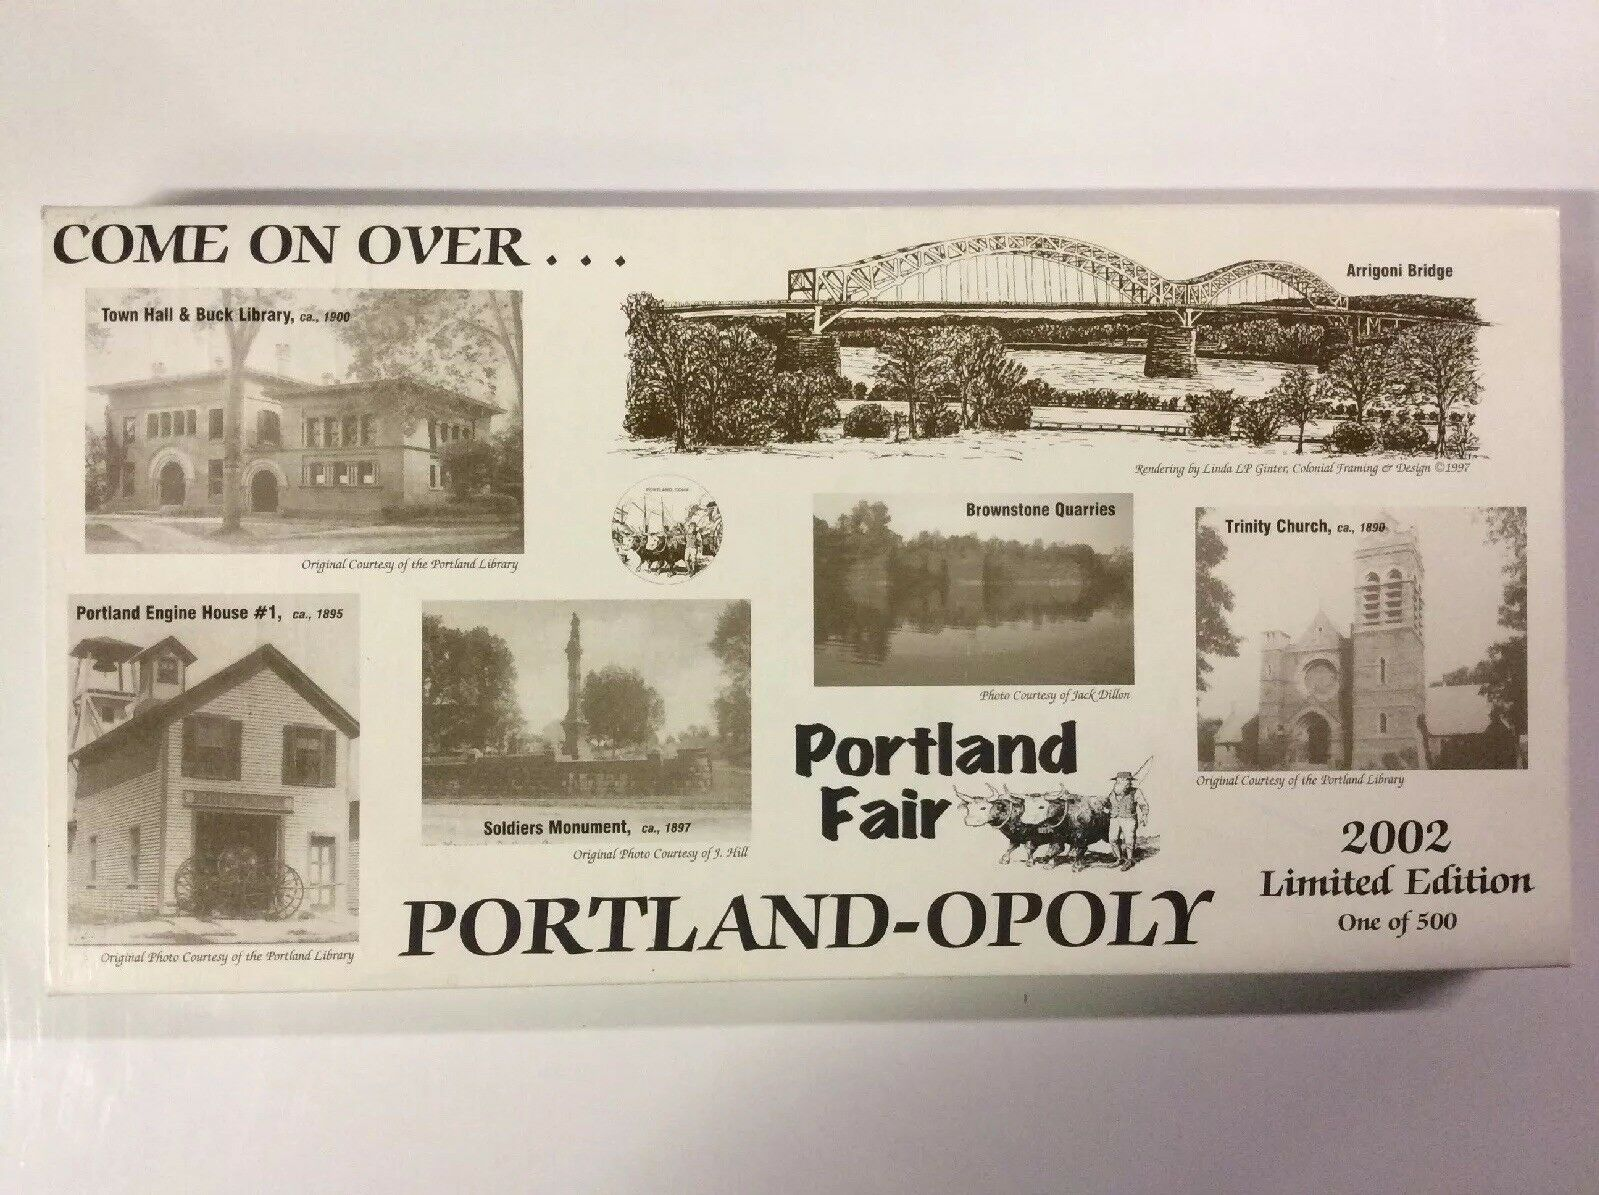 Portland-opoly 2002 Limited Edition Board Game